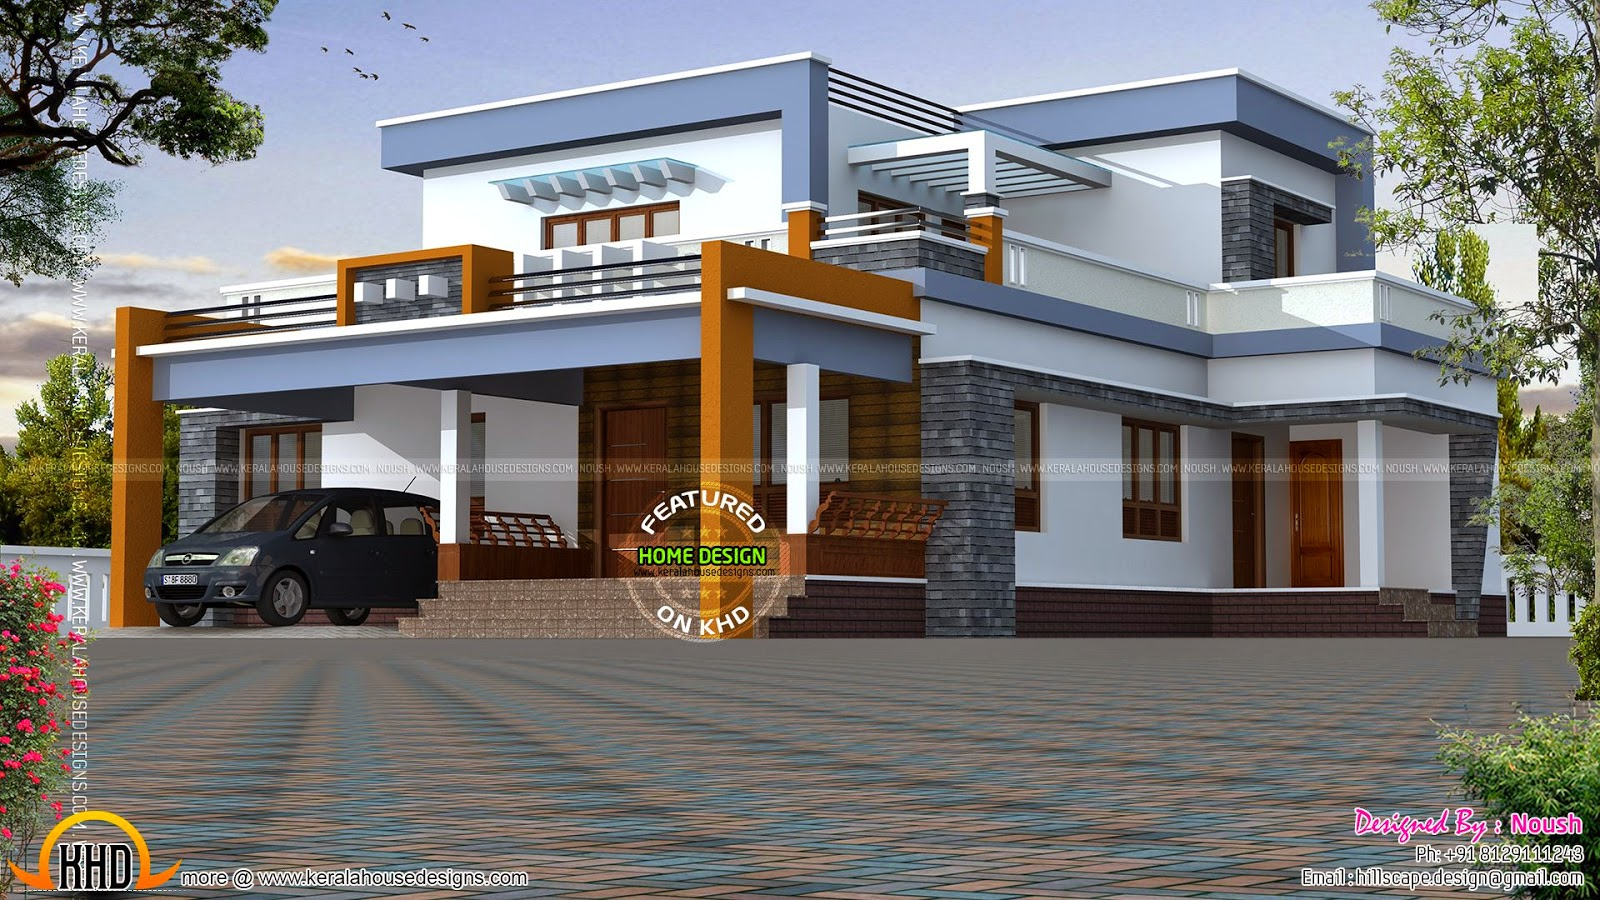 Elevation kerala style front elevation exterior elevation designs - Box Type House Exterior Elevation Kerala Home Design And